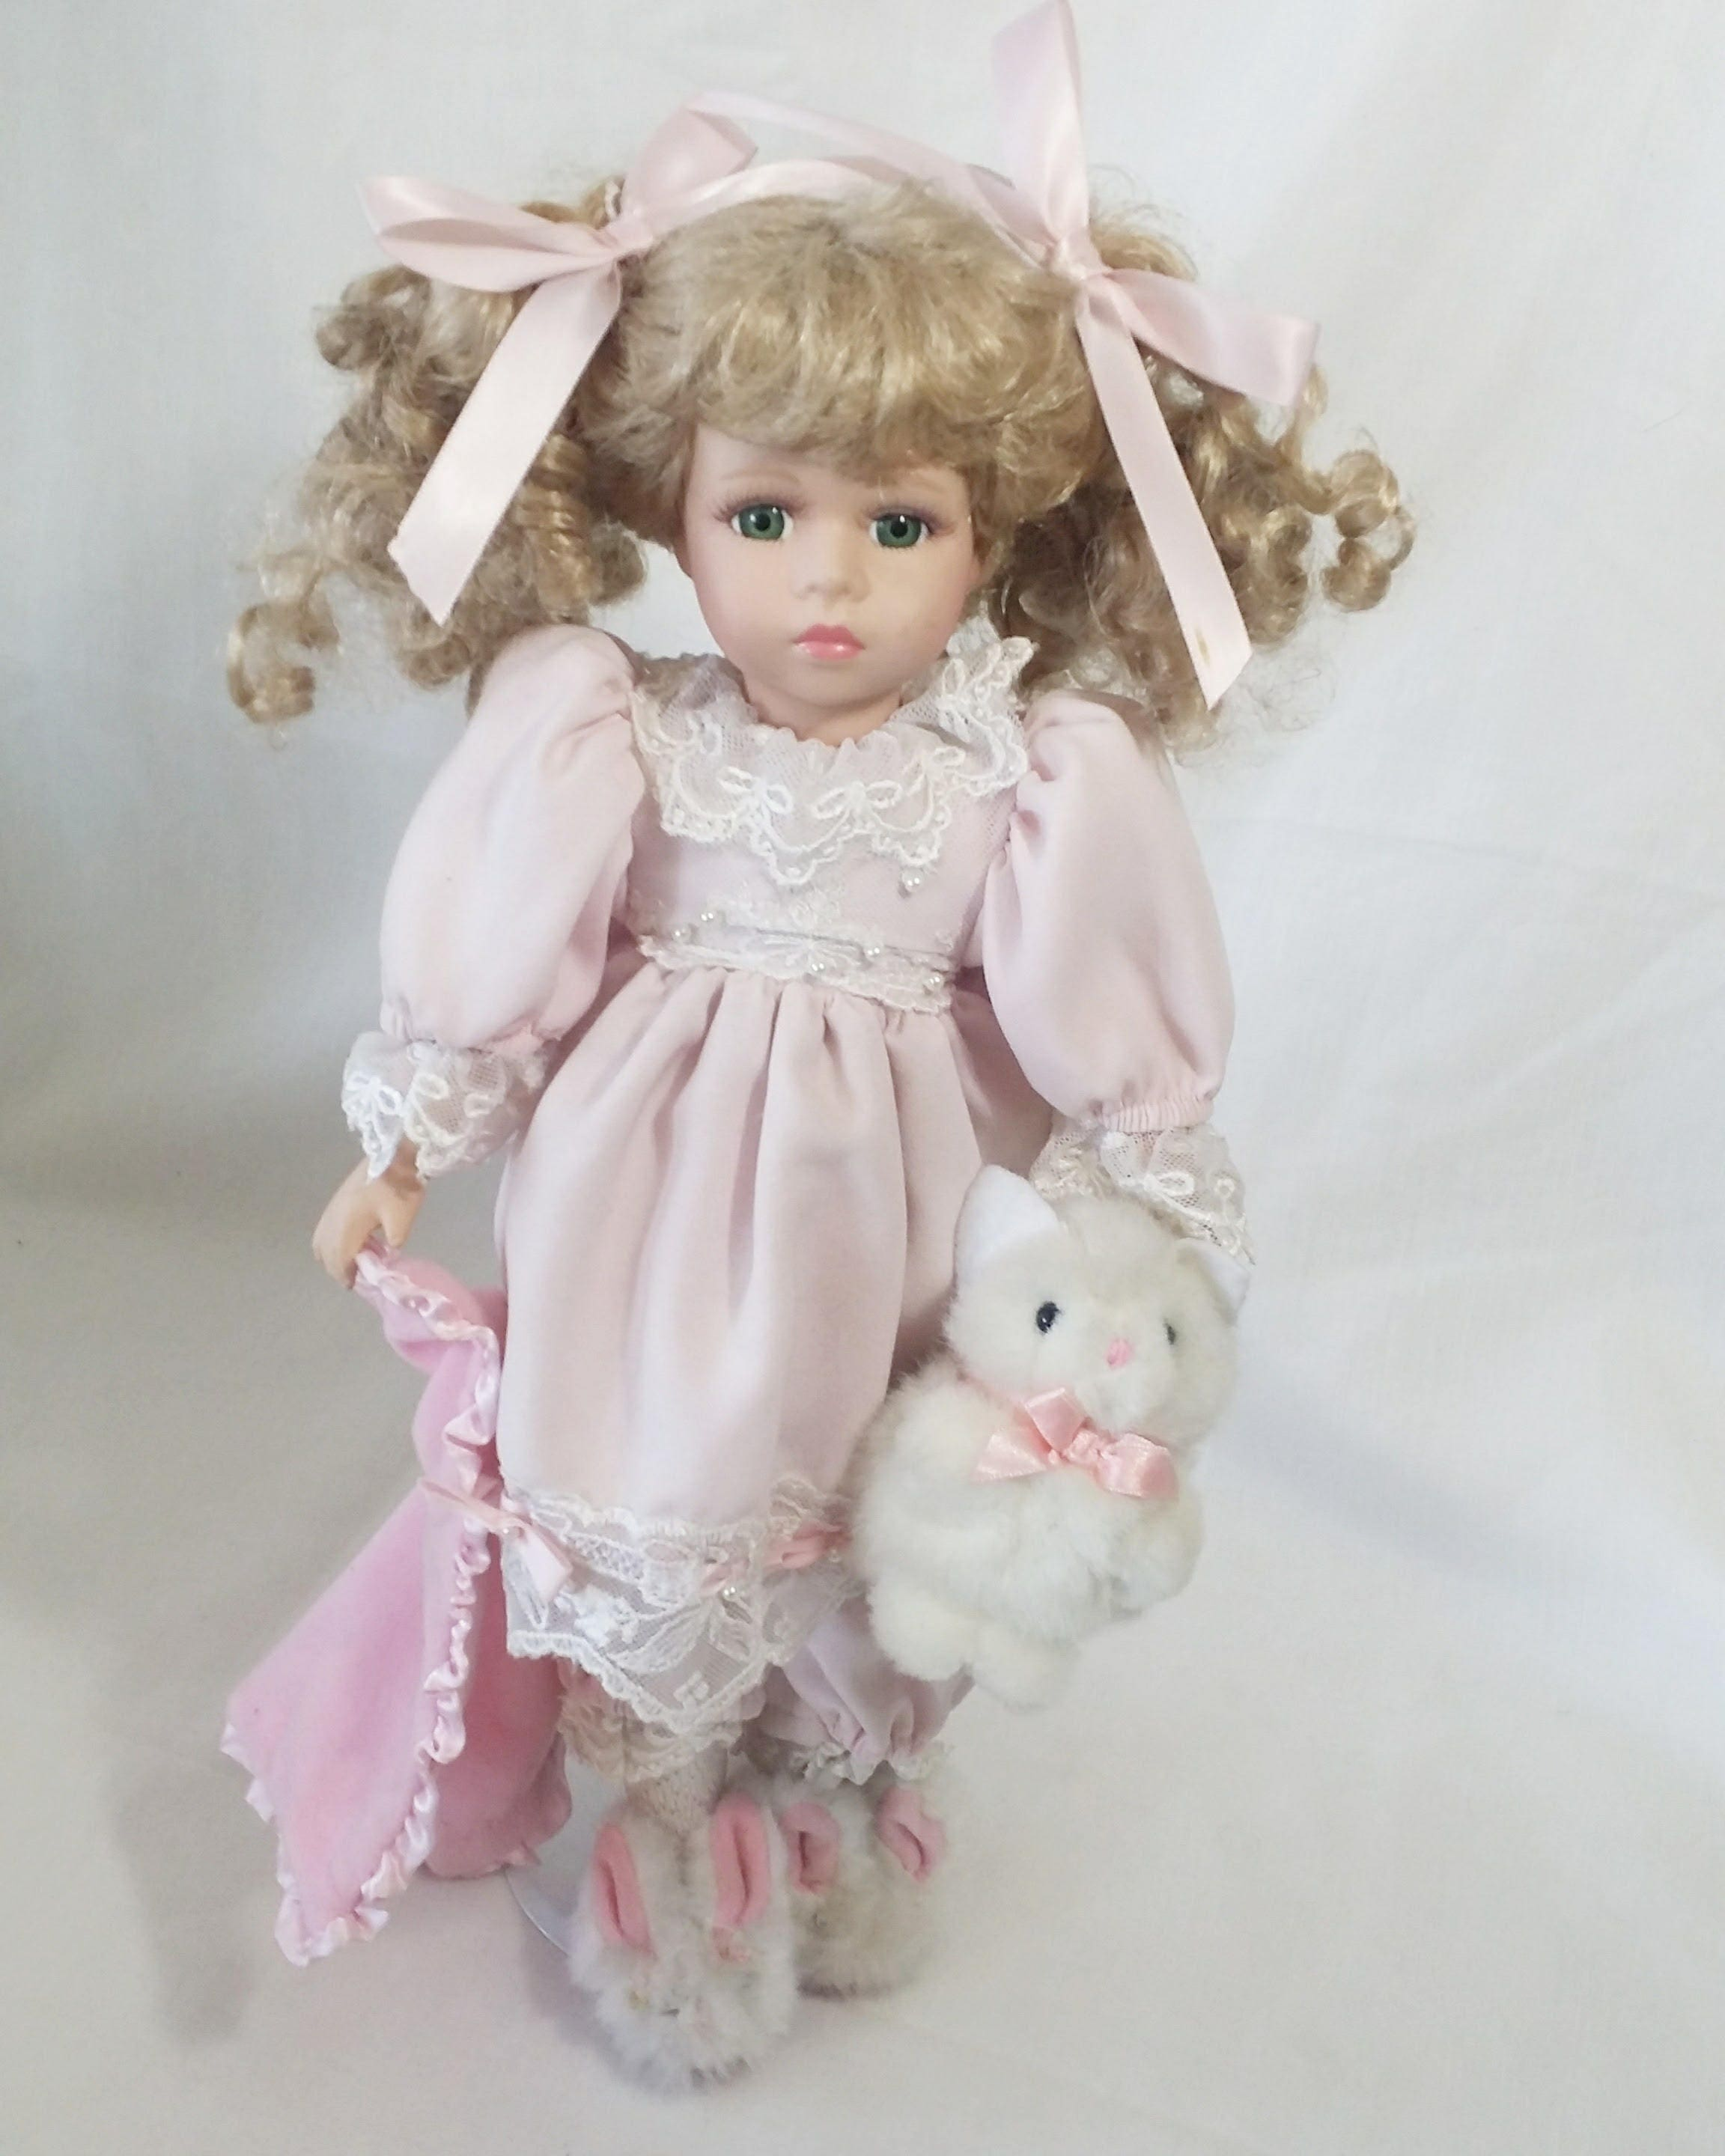 Katie ~ Haunted Vintage Porcelain Doll 17 Inch Doll ~ Paranormal